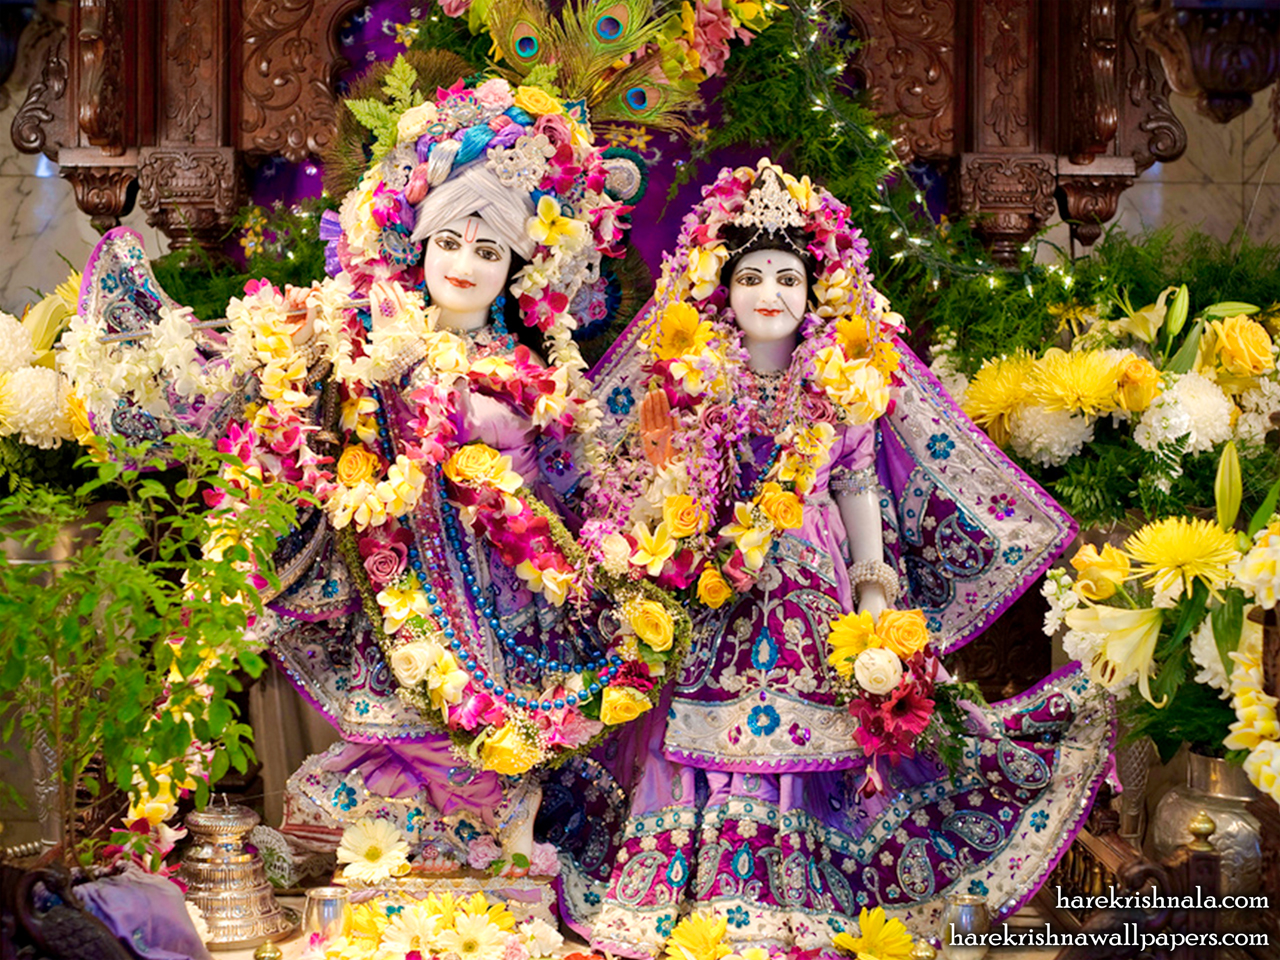 Sri Sri Rukmini Dwarkadhish Wallpaper (009) Size 1280x960 Download